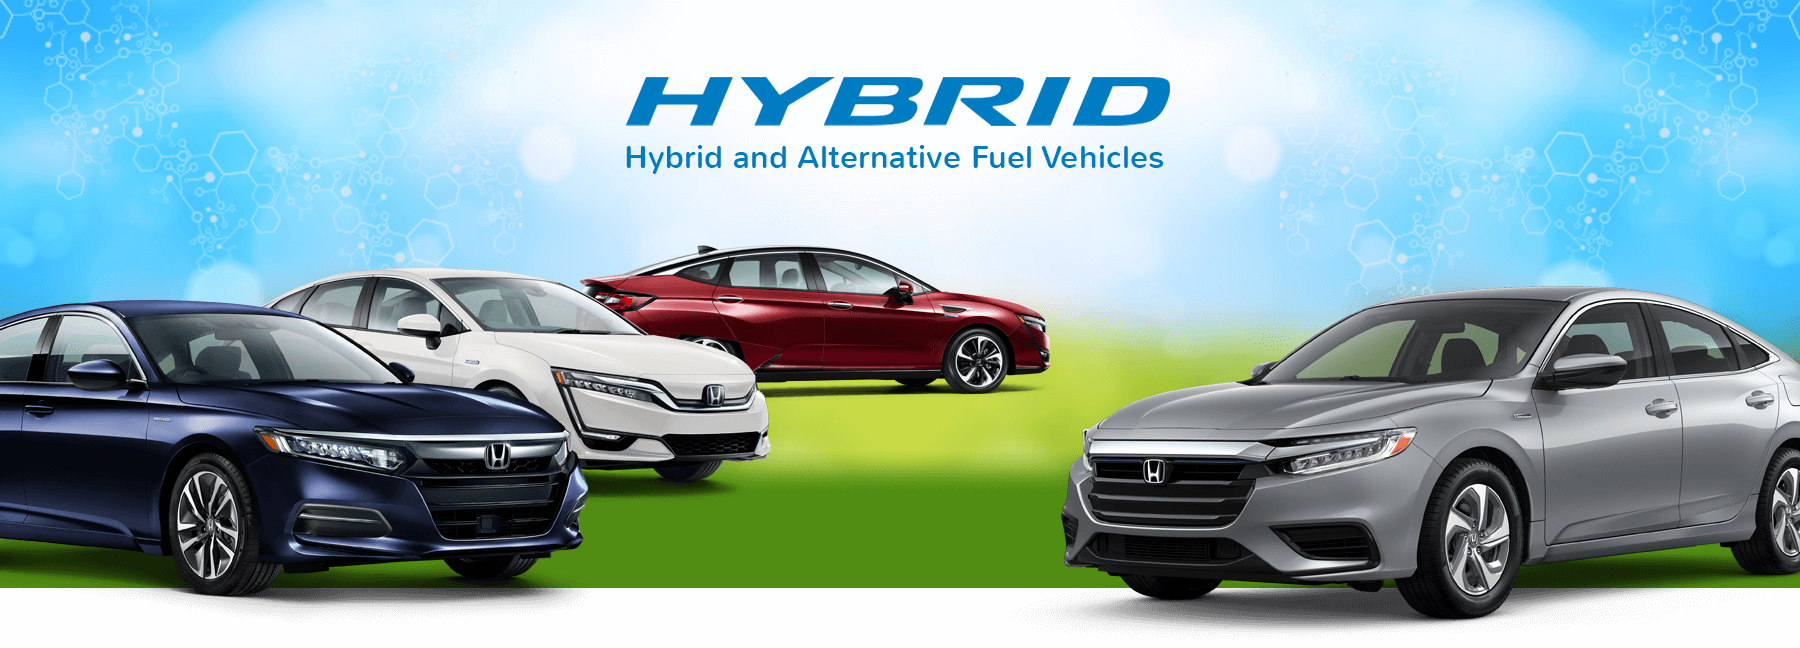 Honda Hybrid Cars and Alternative Fuel Vehicles Banner